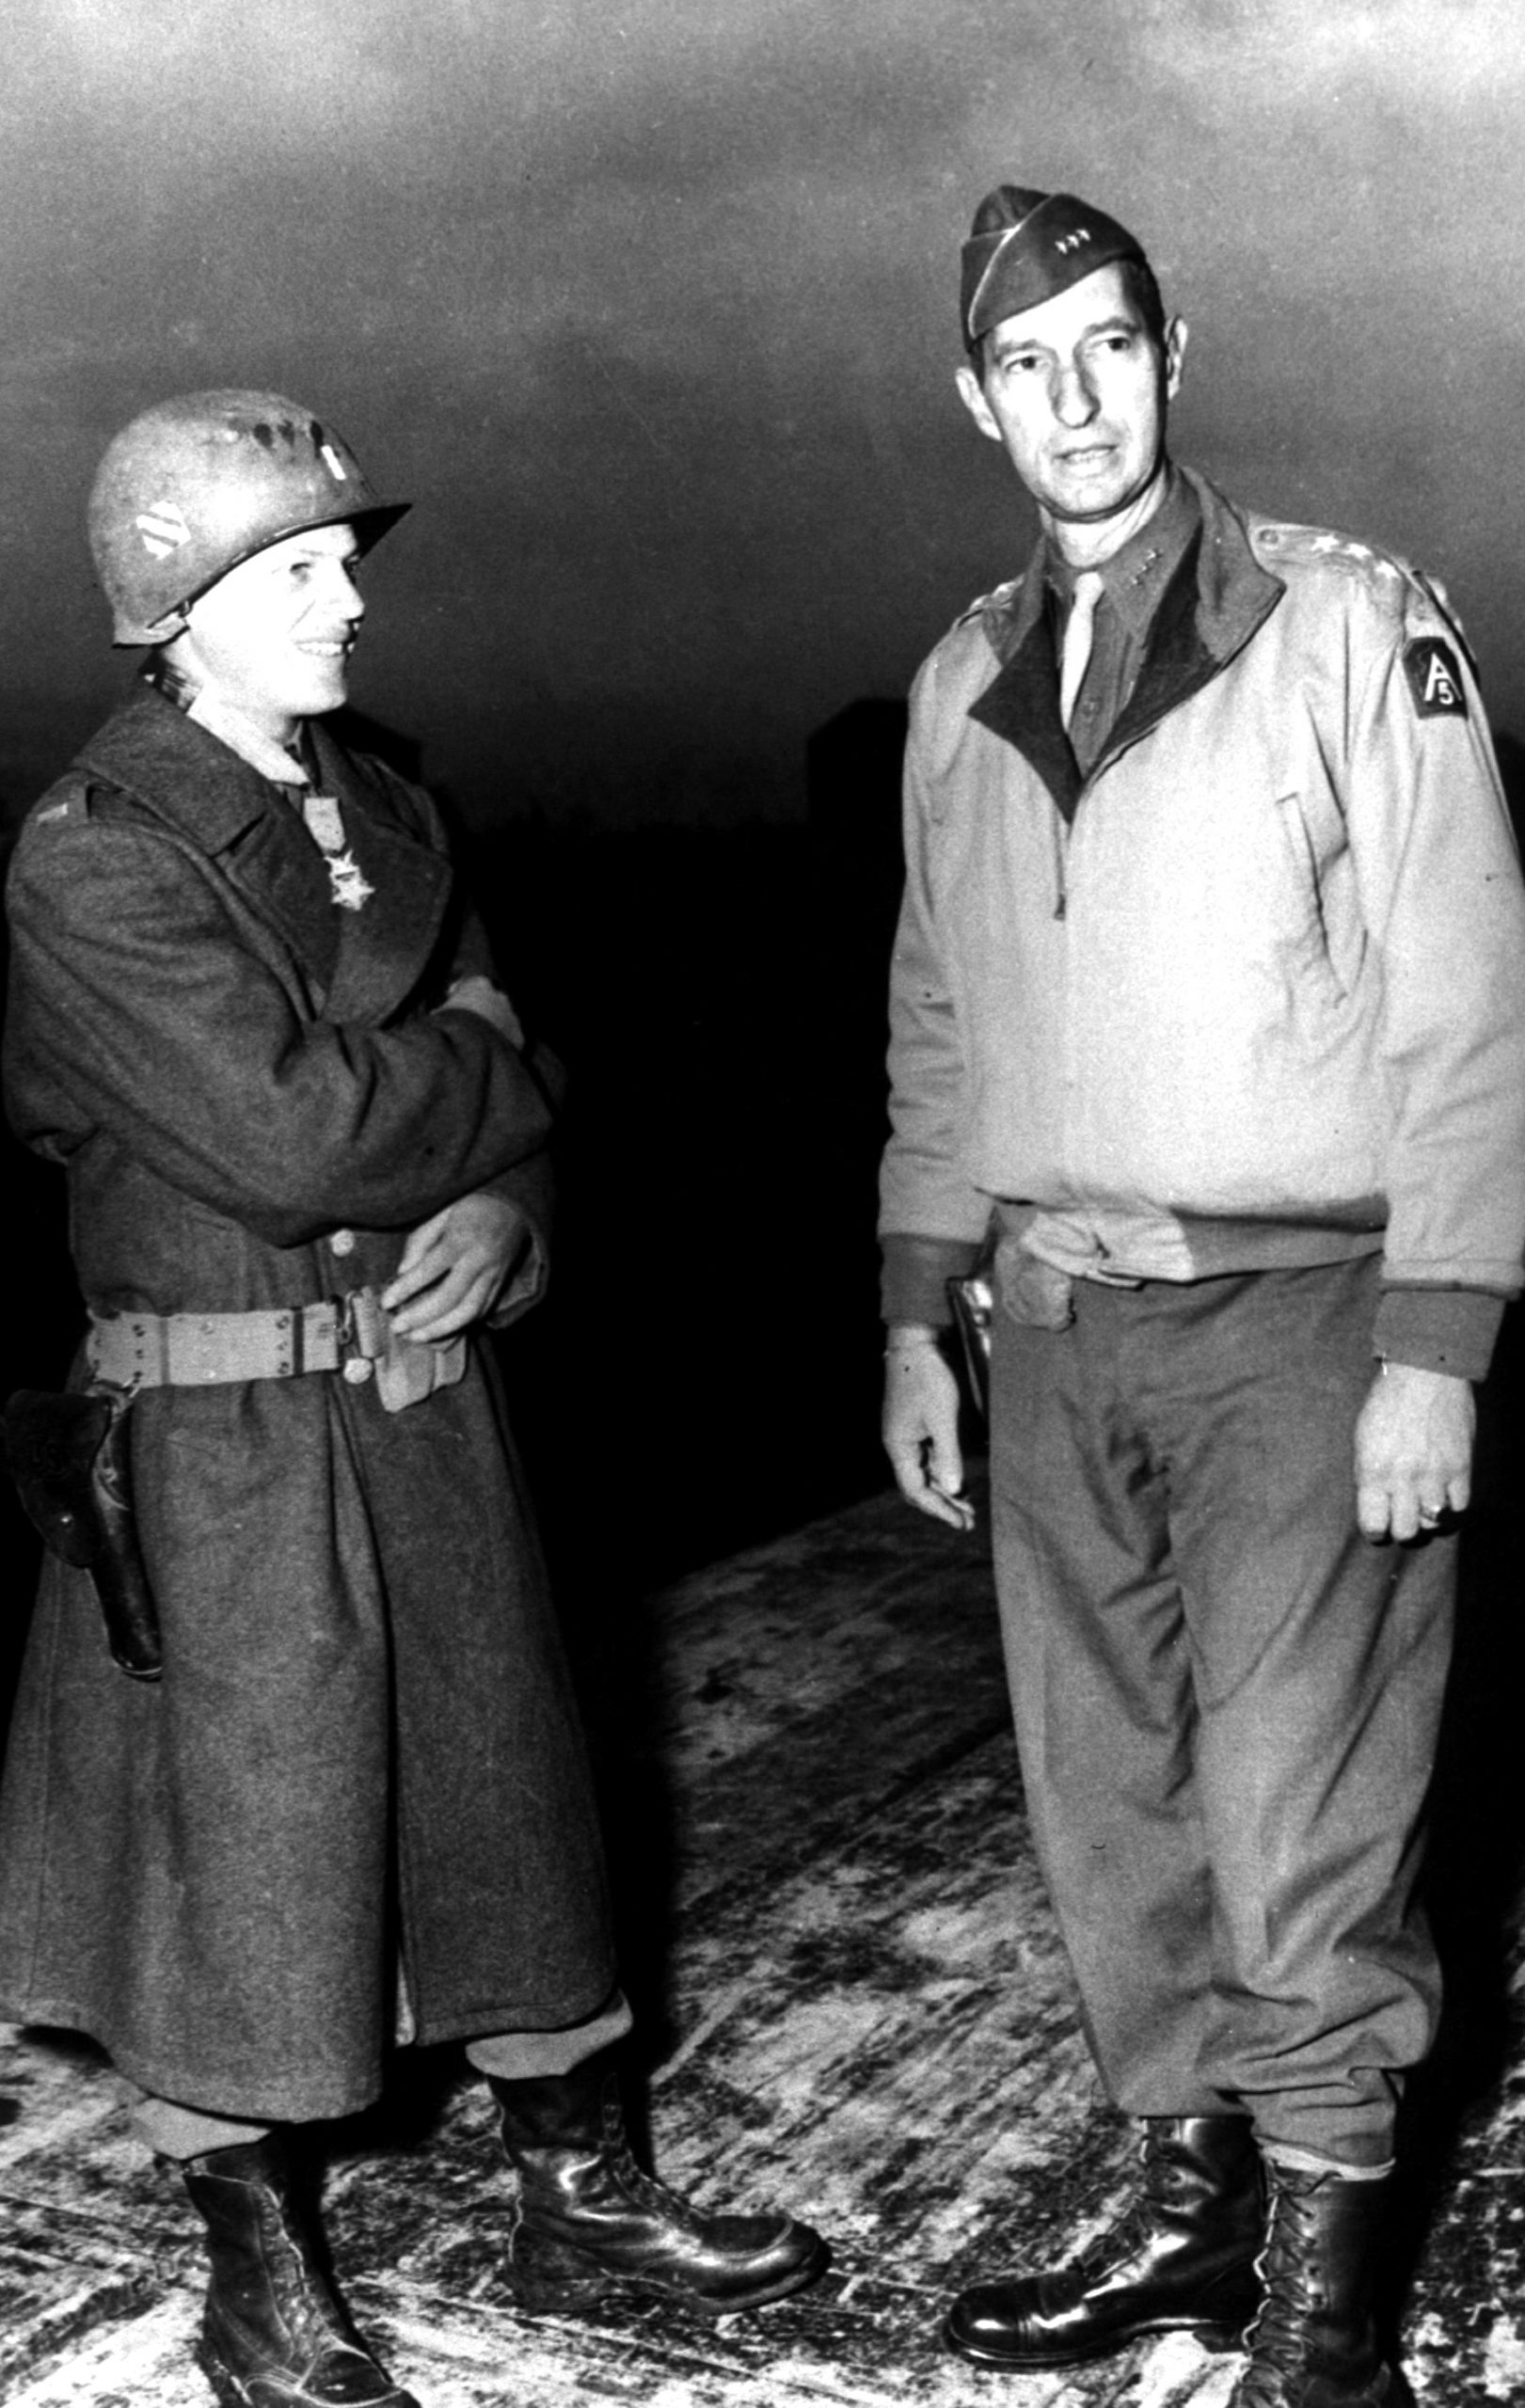 Lt David C. Waybur (Peidmont, Cal) 3rd Recon Troop, 3rd Infantry Division chats with Gen Mark W. Clark, CG US 5-A, who presented him with the Congressional Medal of Honor for his conspicuous gallantry under fire, Baia e Latina, Italy, Nov 29, 1943